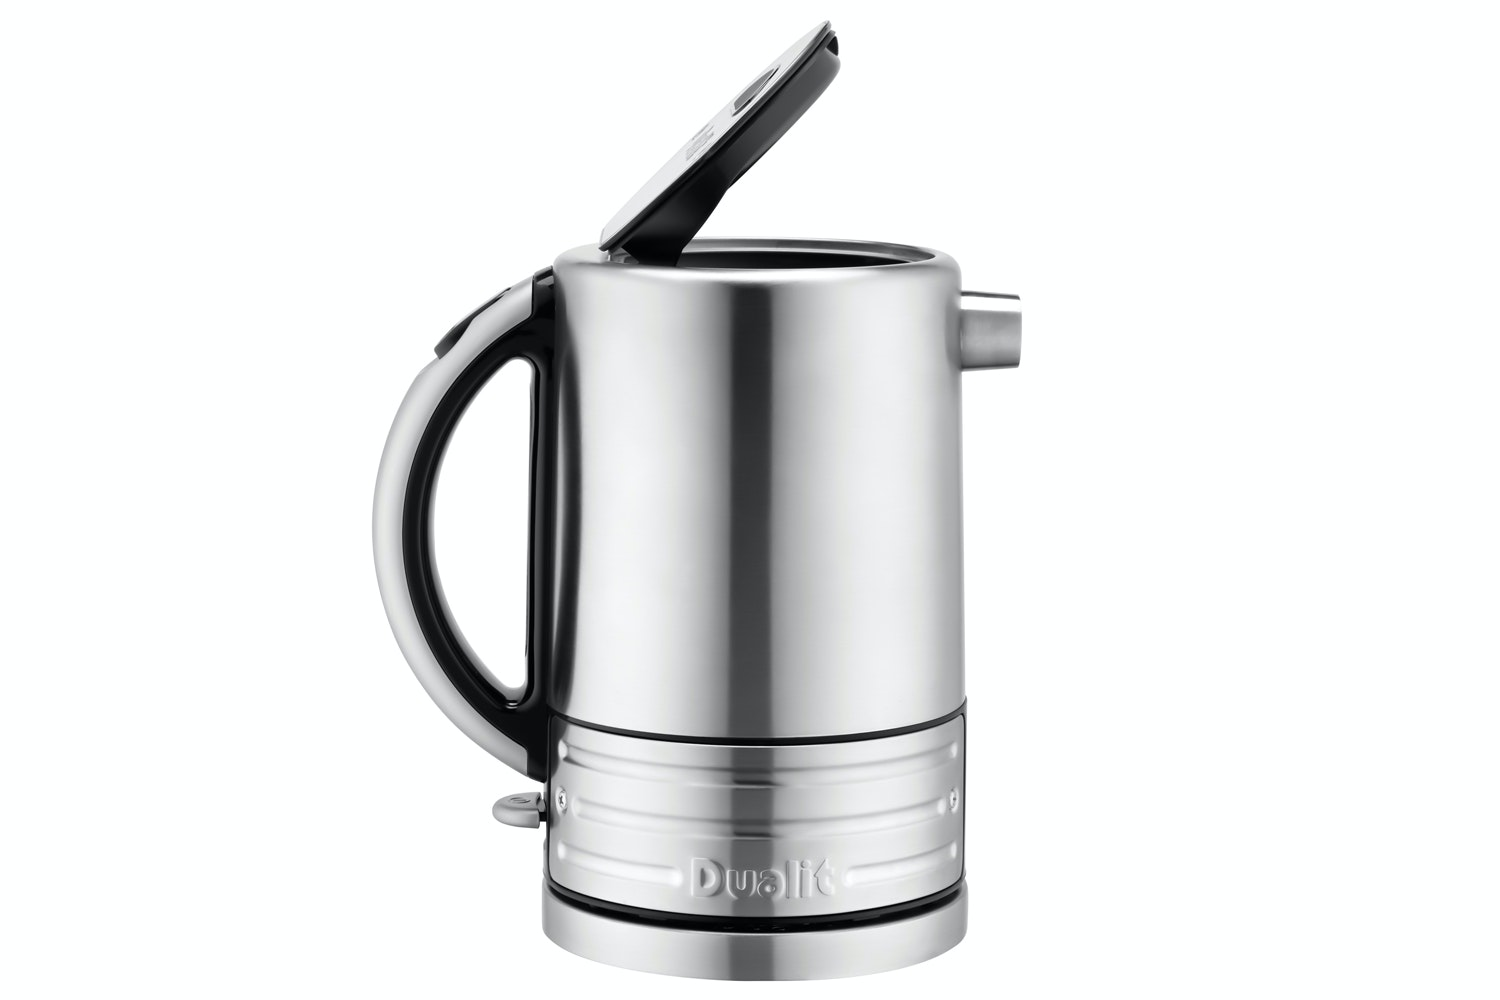 Dualit 1.5L Architect Kettle | 72905 | Stainless Steel